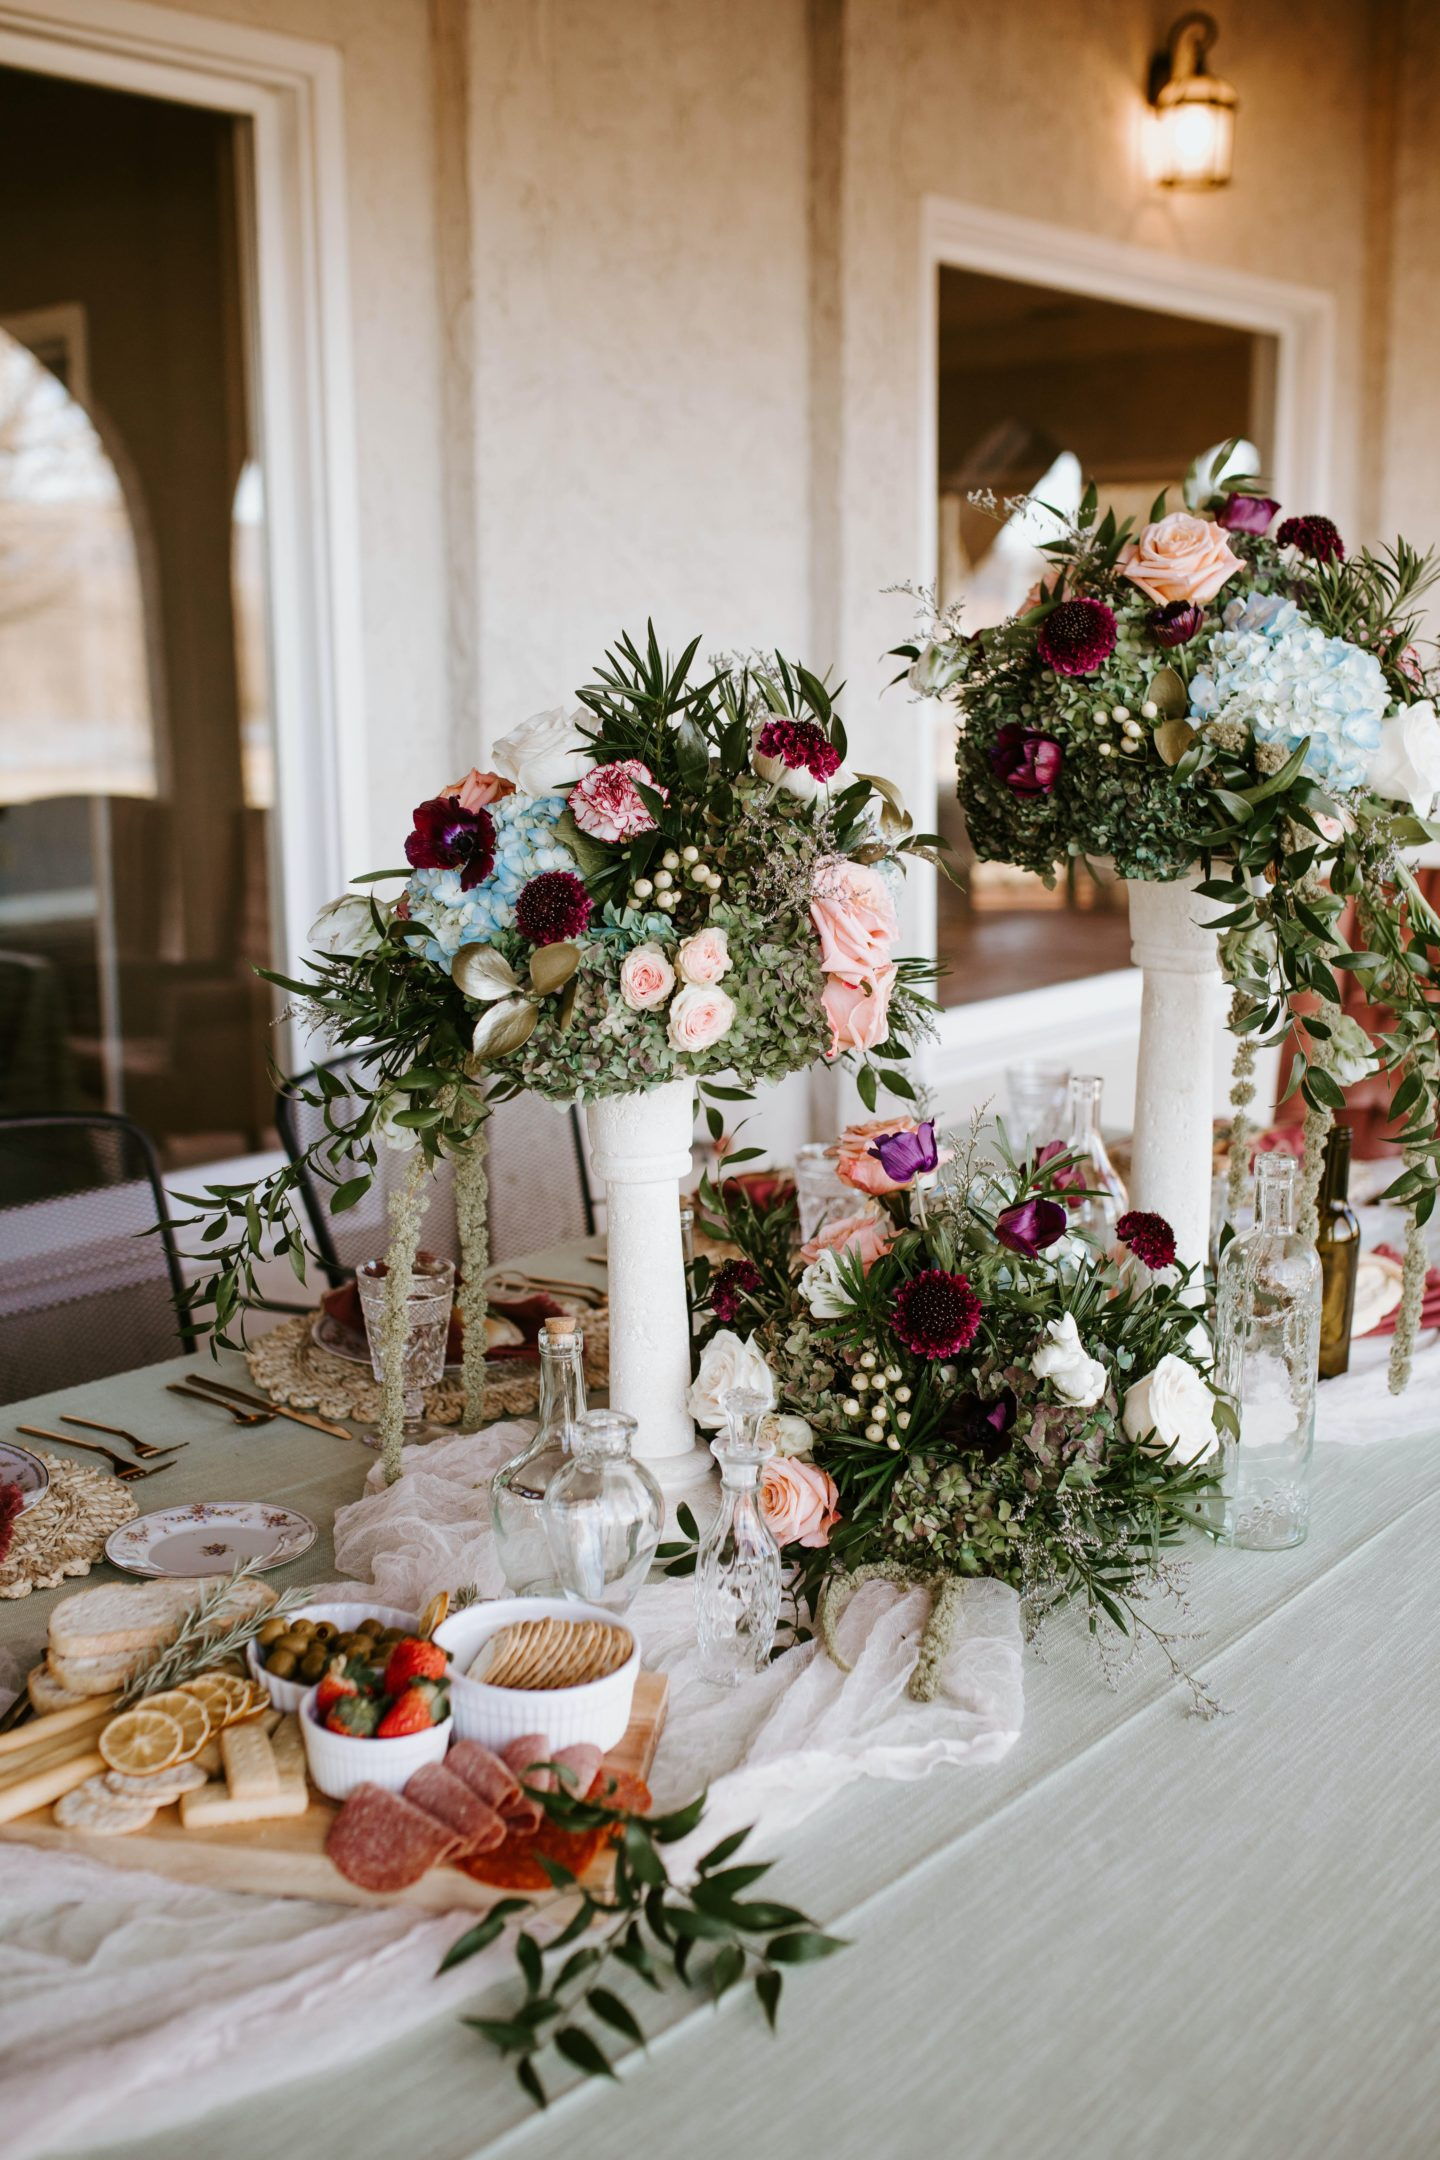 How To Get The Best From Exhibiting At A Wedding Show